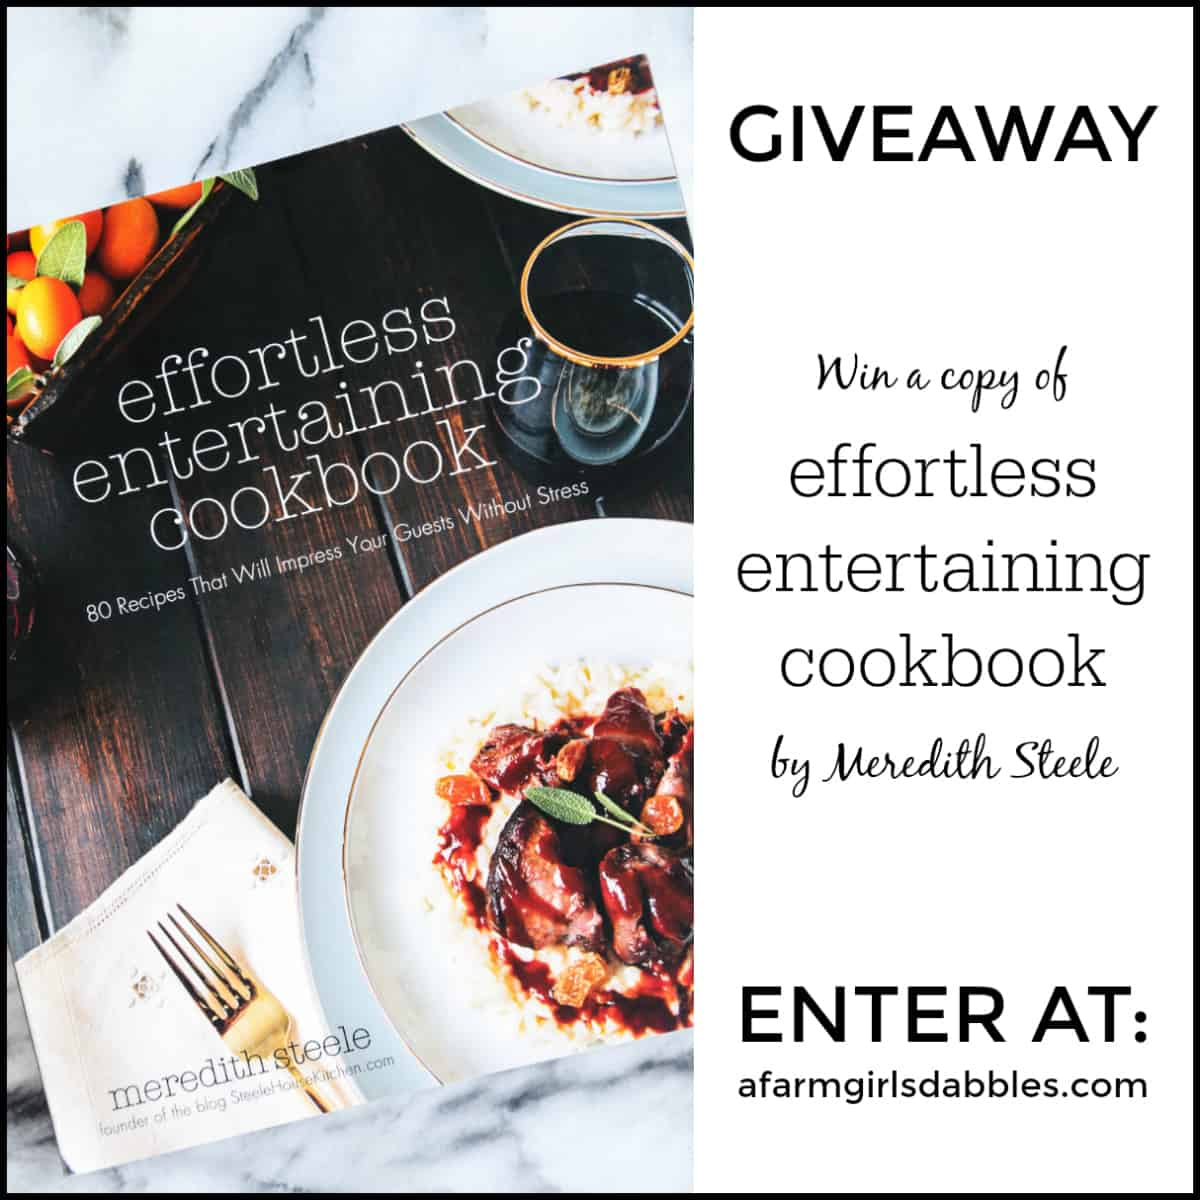 Effortless Entertaining Cookbook Giveaway at afarmgirlsdabbles.com